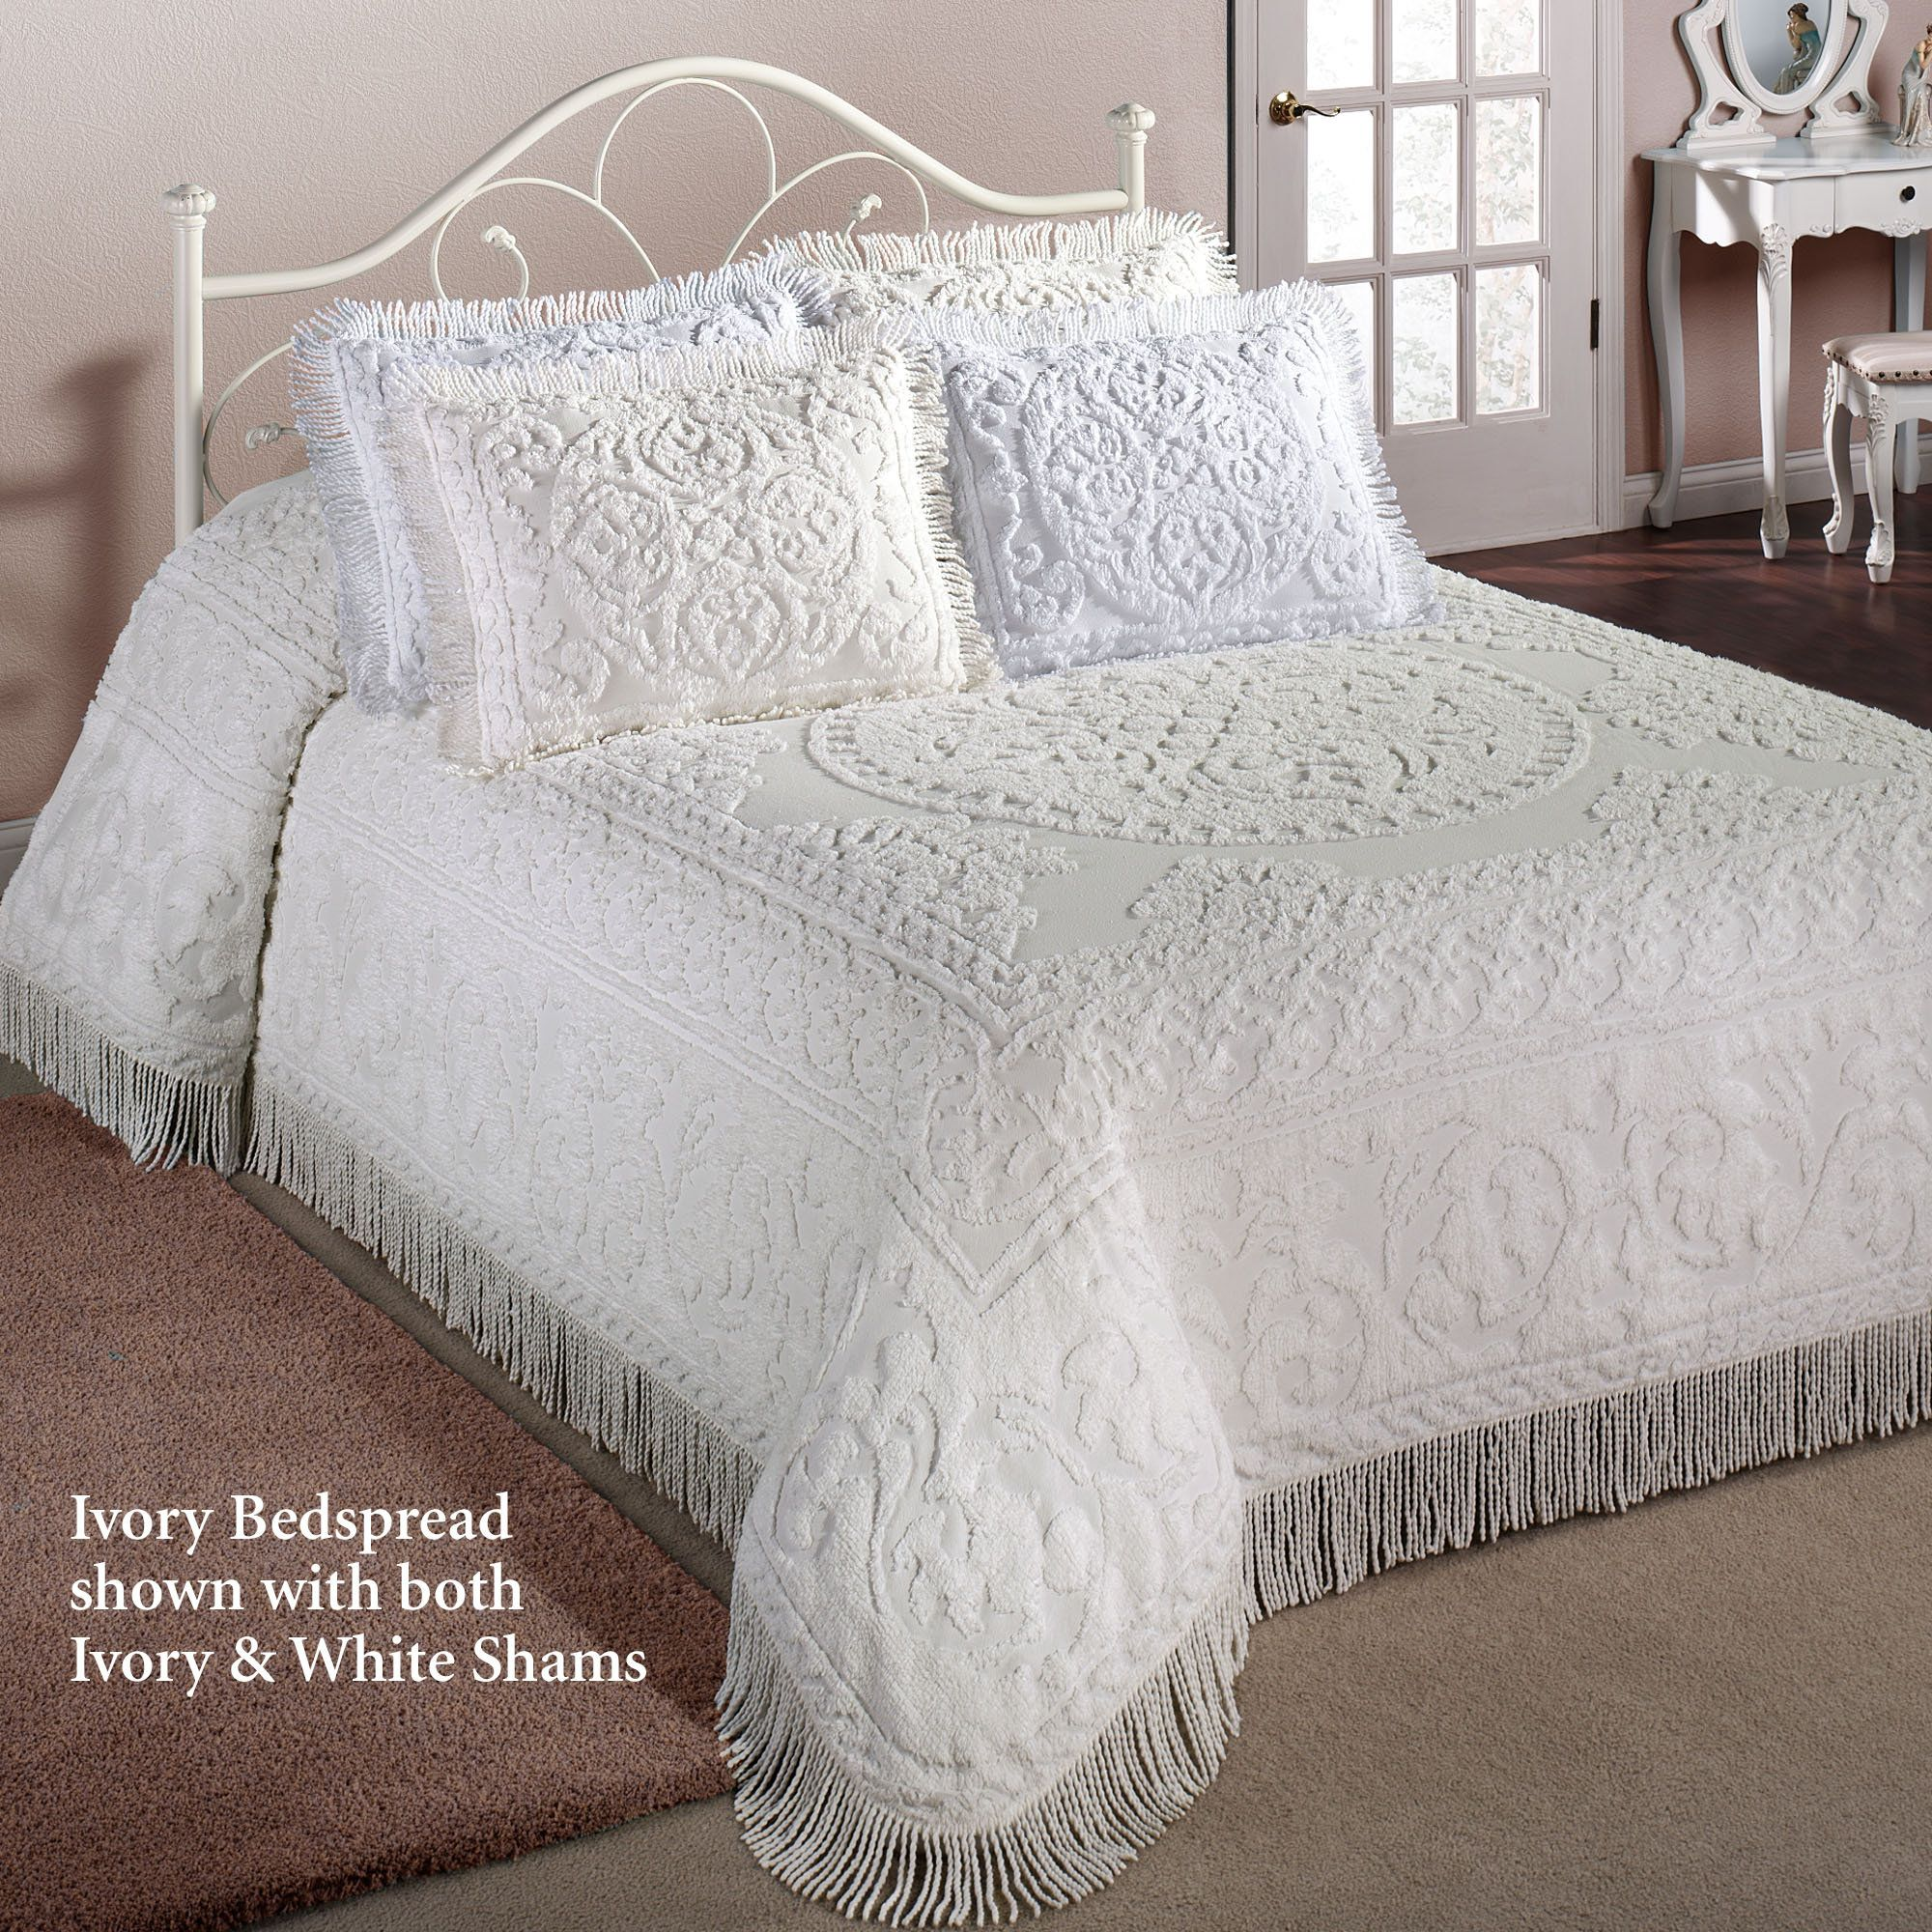 Cotton Chenille Medallion Bedspread Bedding Bed spreads